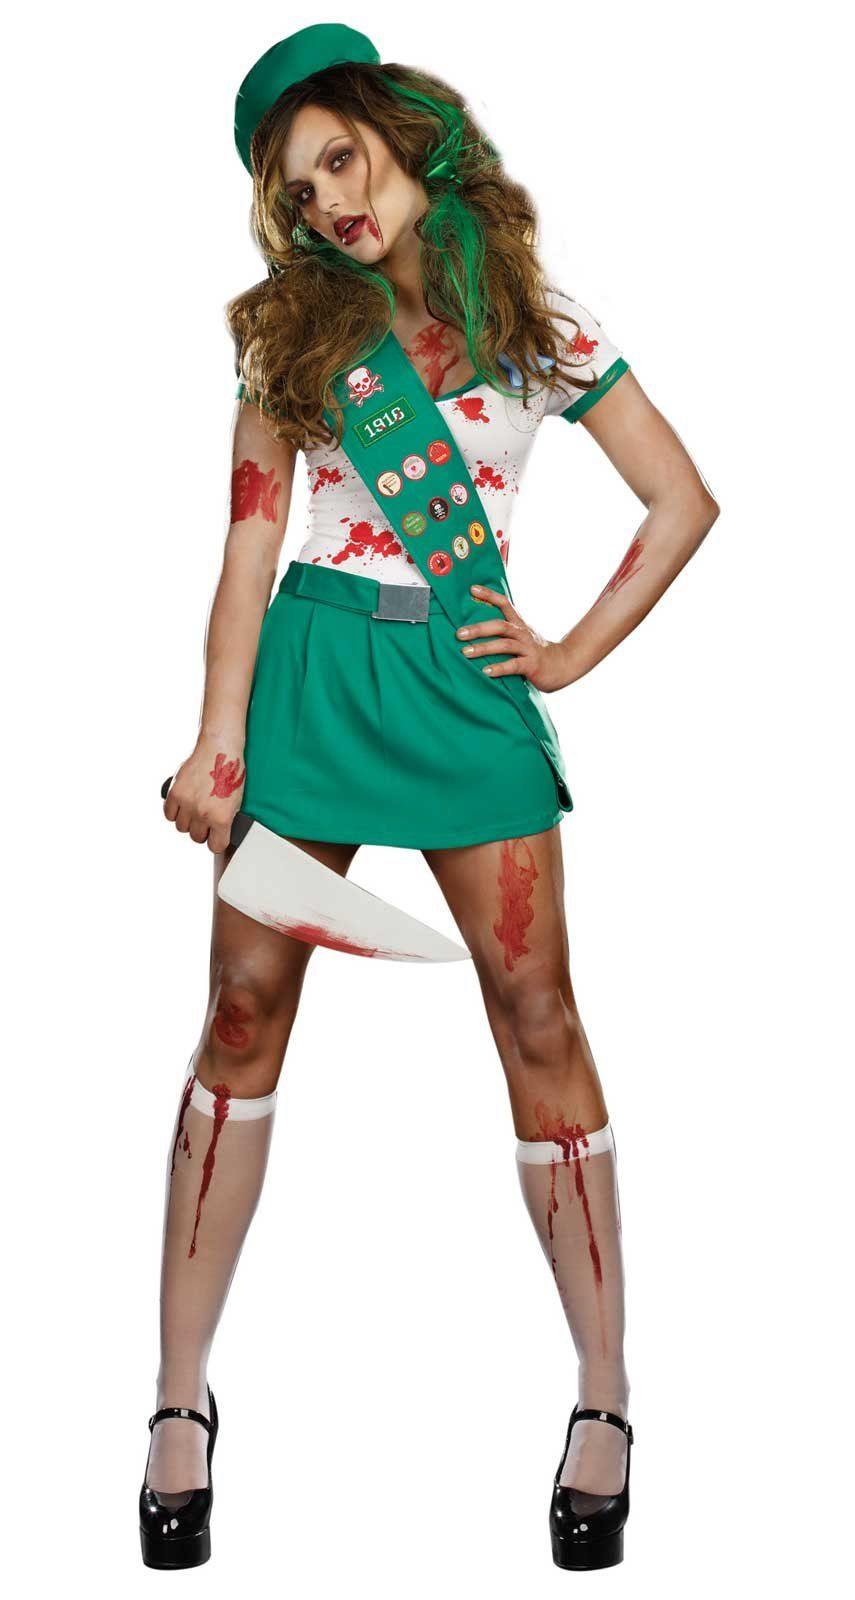 Crazy Ghoul Scout Adult Costume | Costumes, Halloween costumes and ...